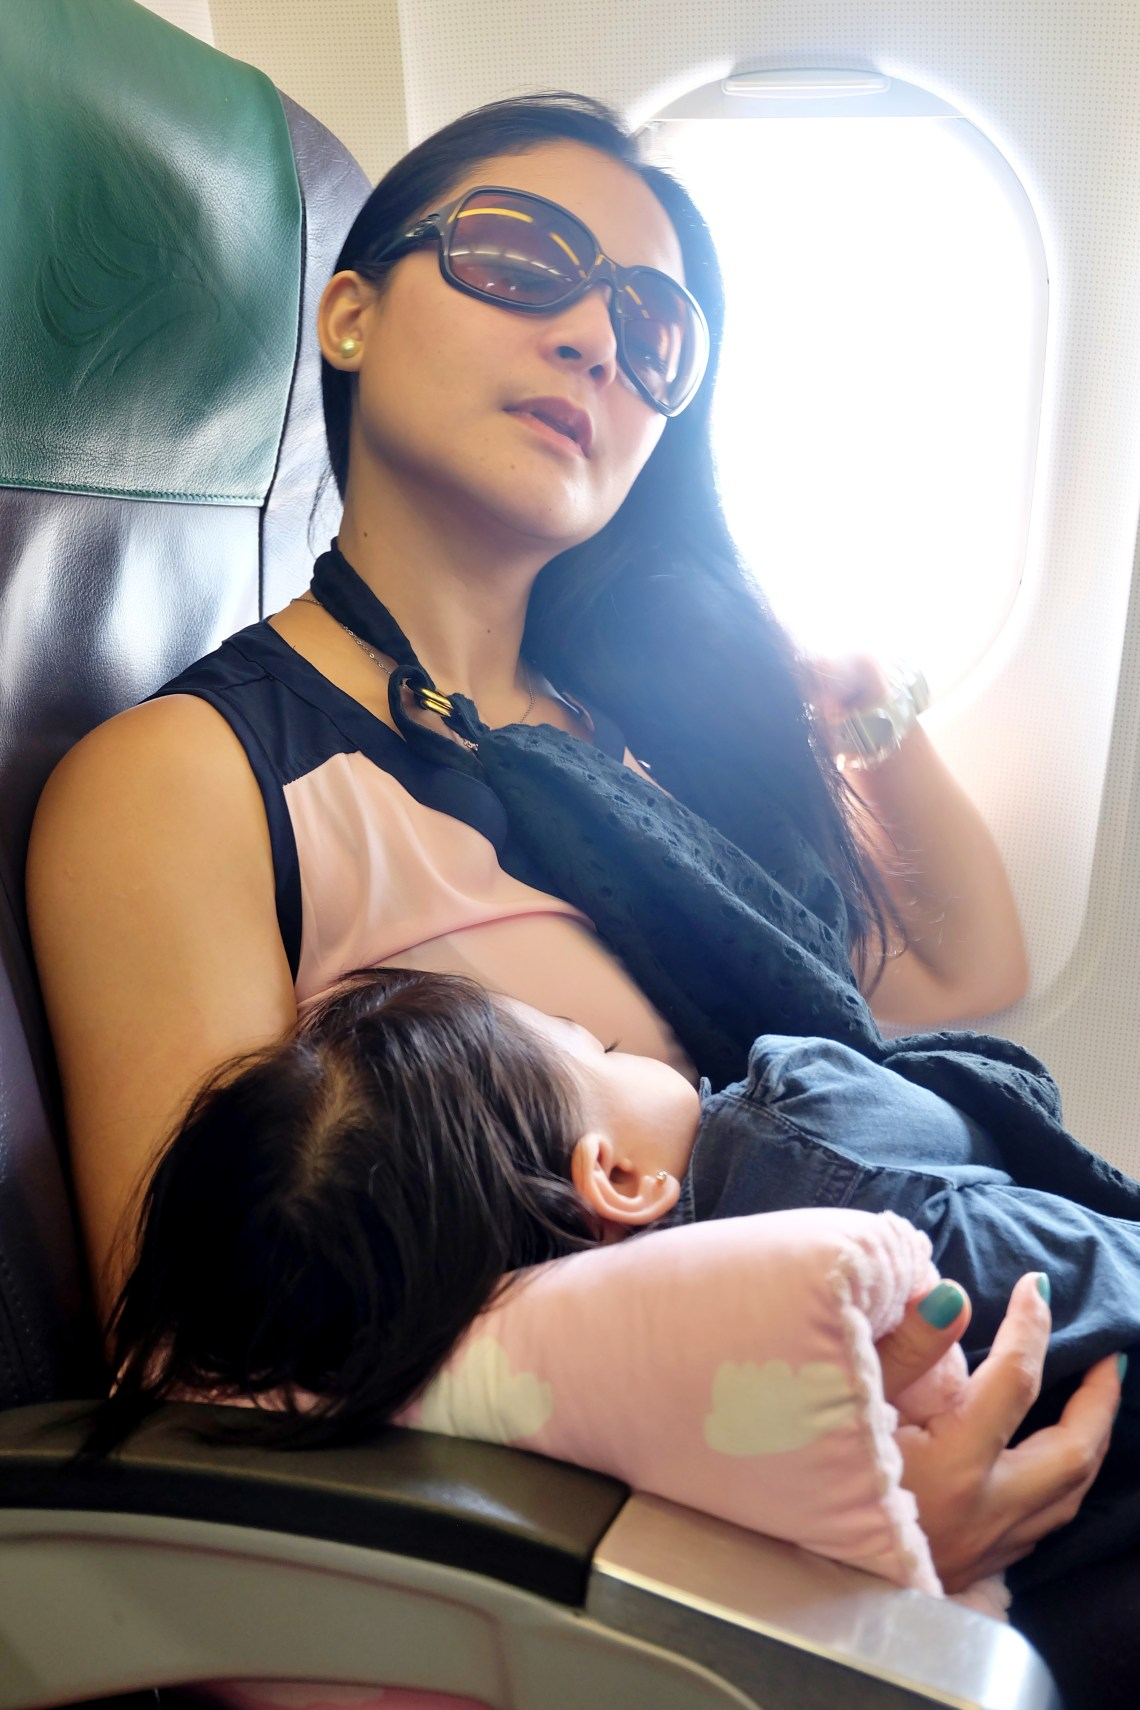 Airplane mother and child